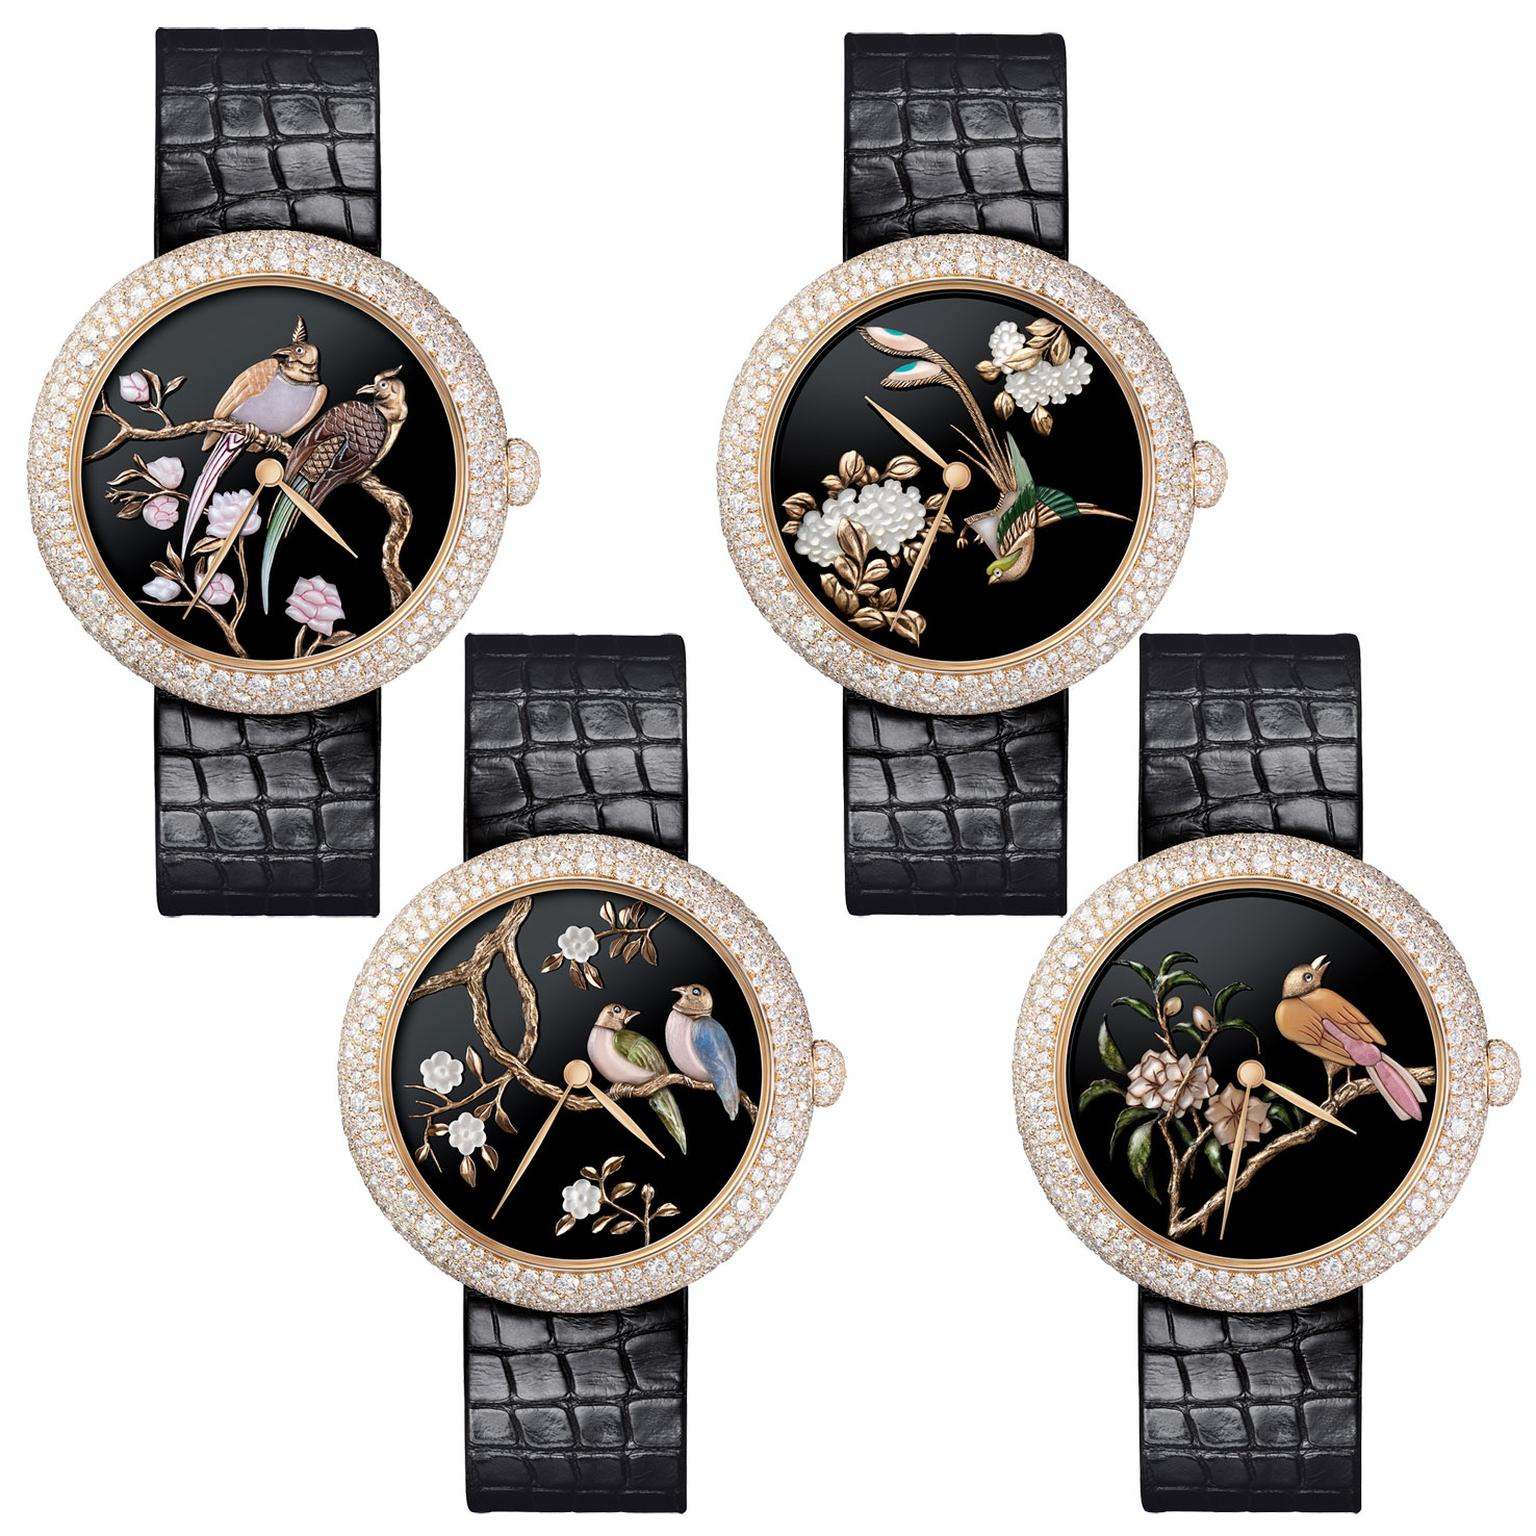 Chanel Mademoiselle Prive Coromandel Glyptic watches